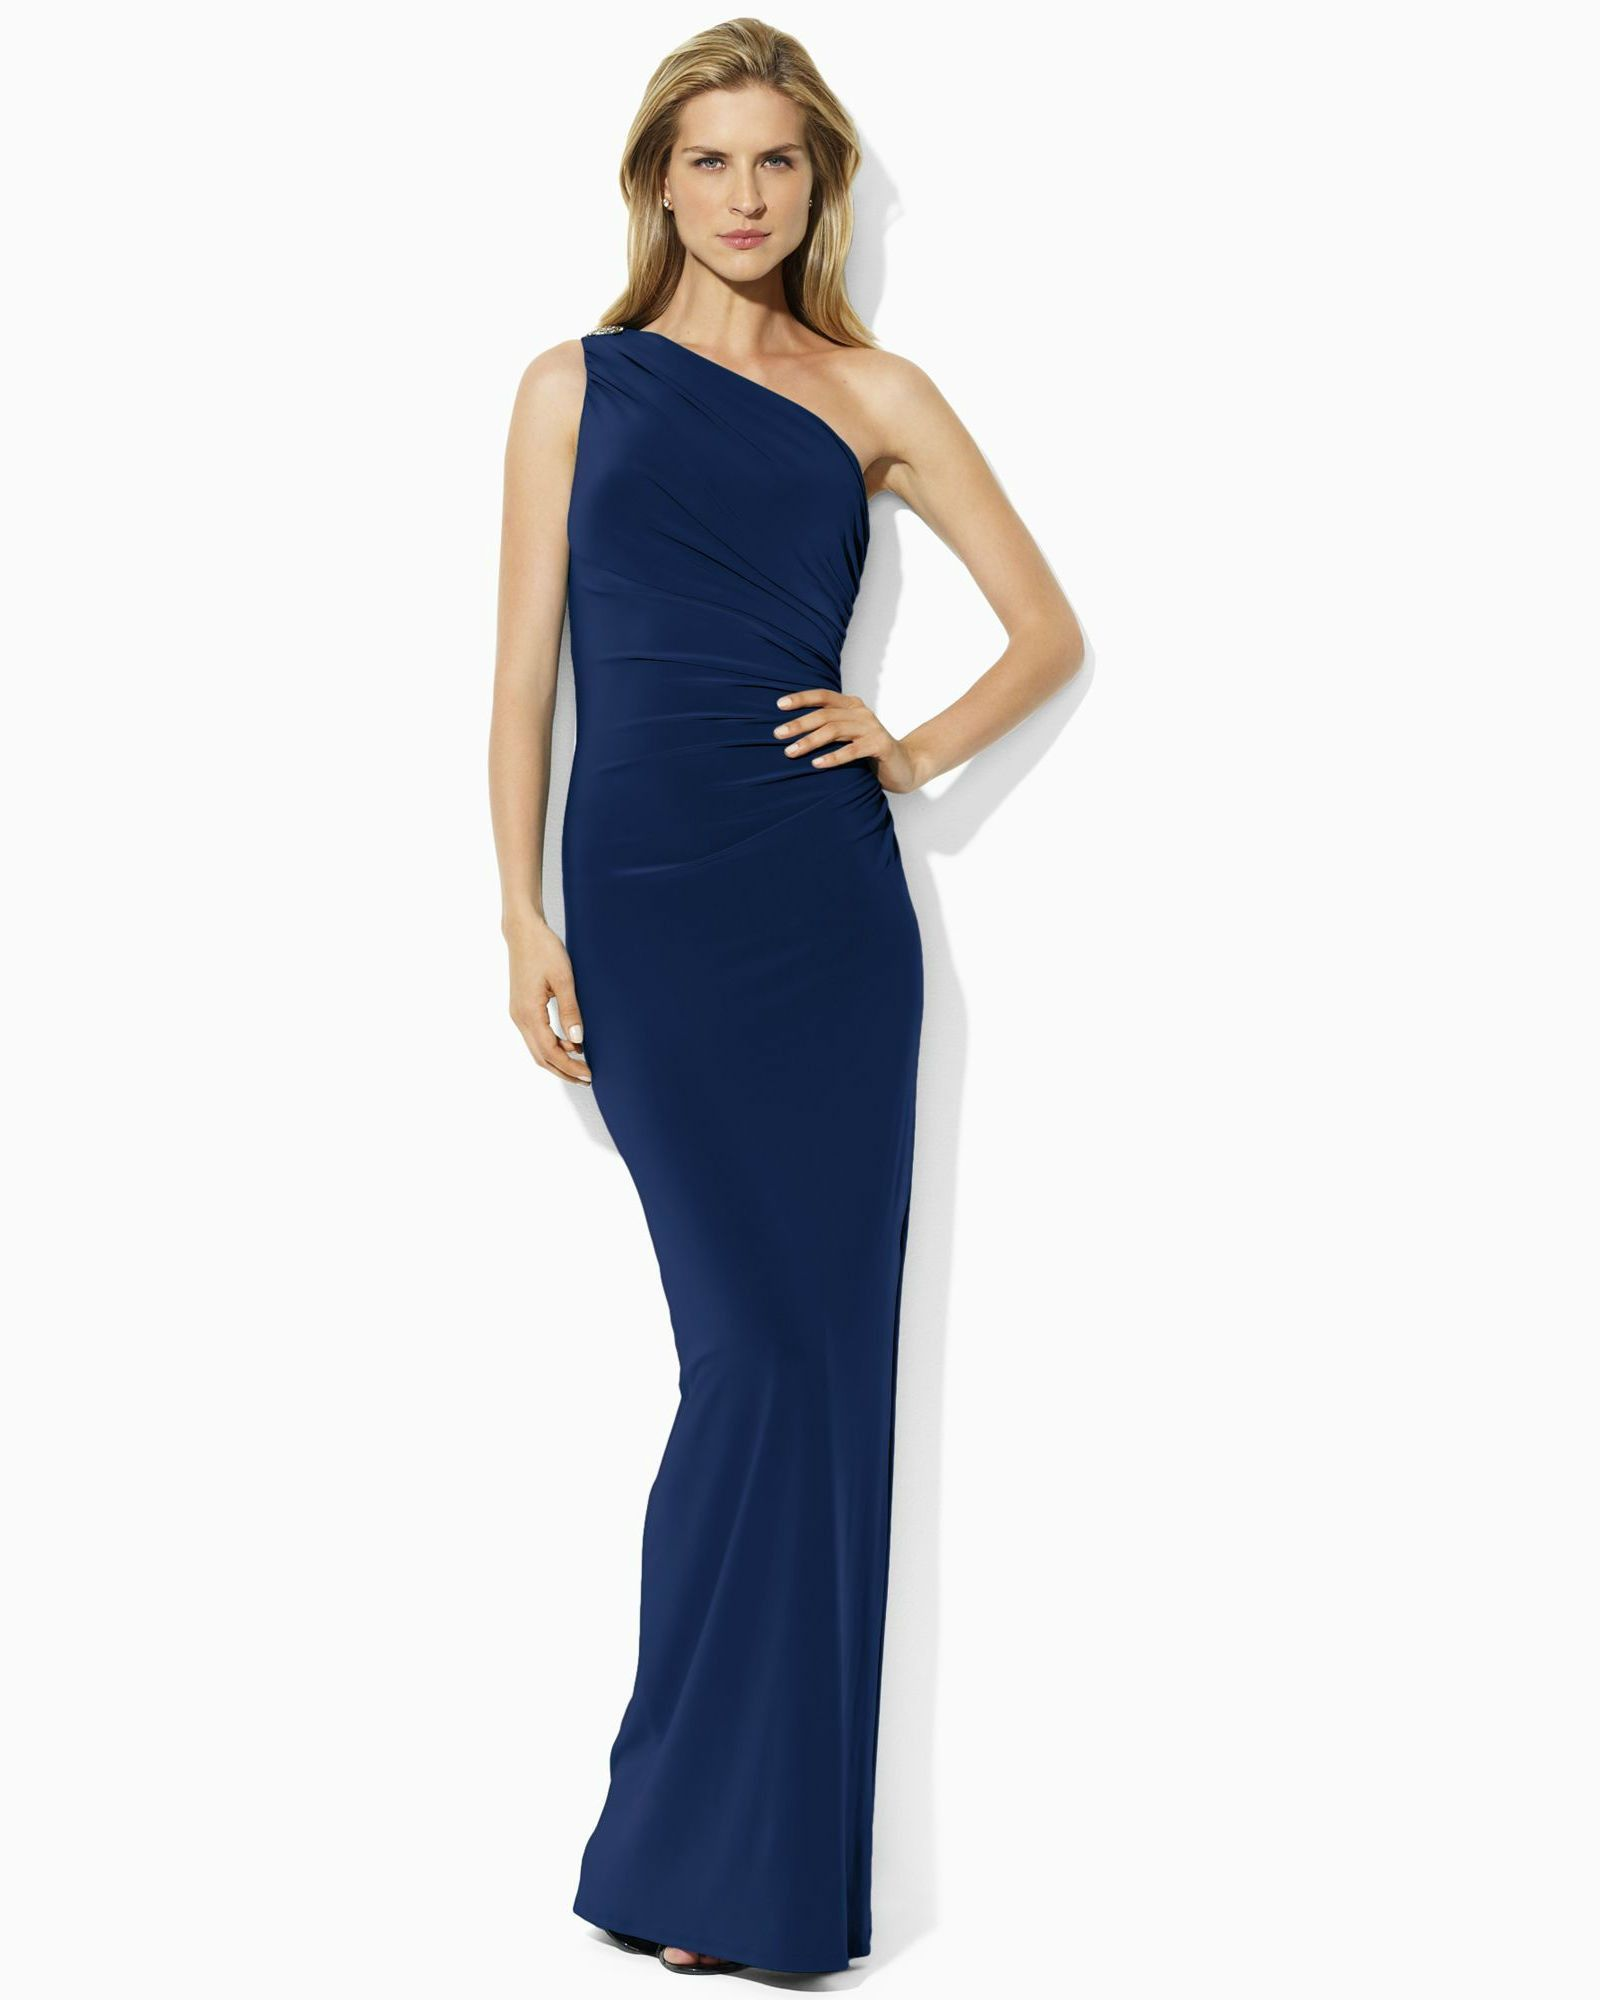 626499f2738f Crafted from sleek matte jersey, Lauren Ralph Lauren's floor length dress  exudes a subtle, sexy appeal with a one shoulder silhouette and a jewel  encrusted ...